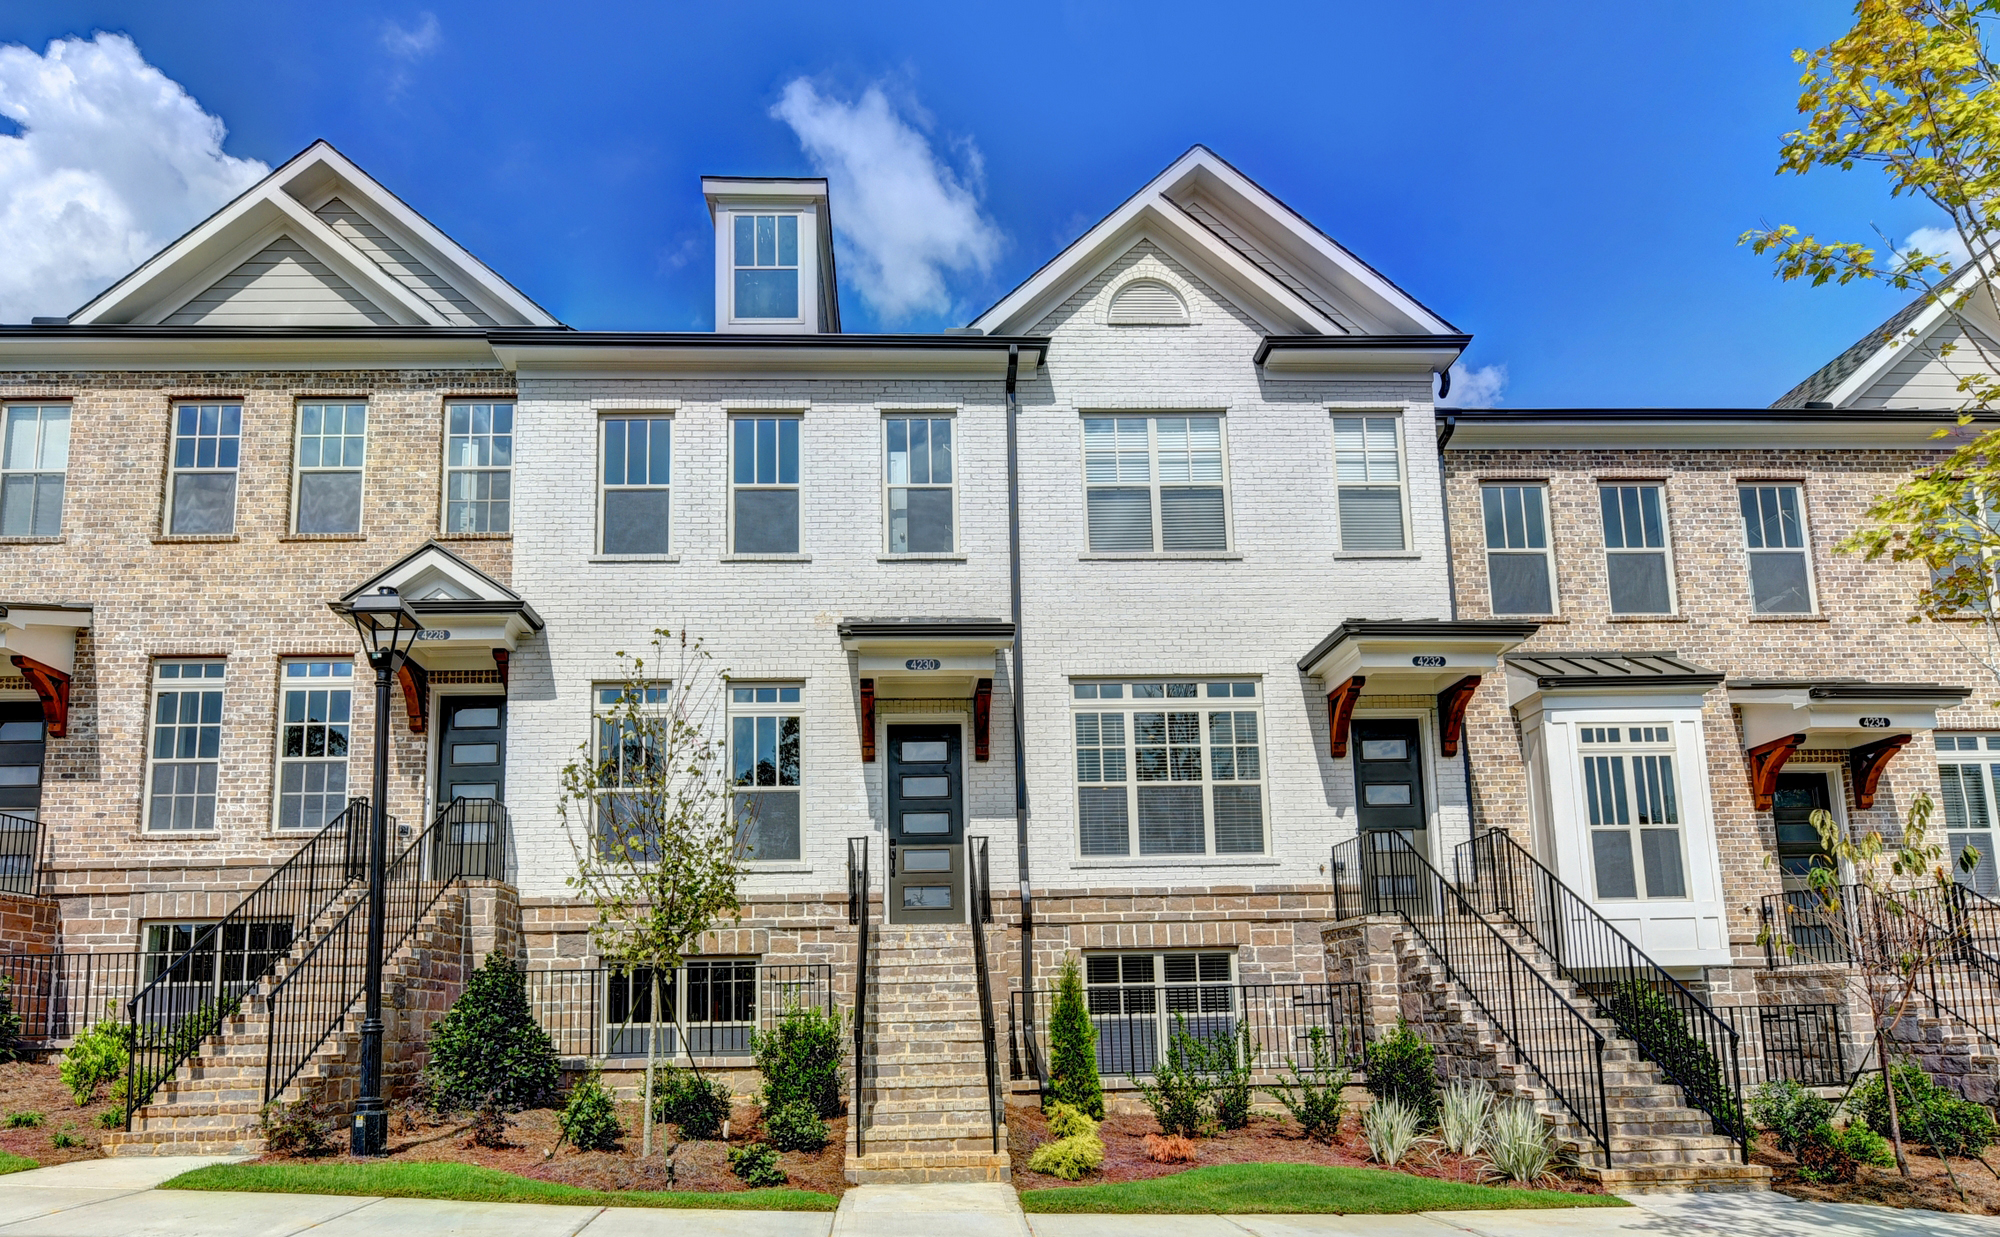 Hurry Home to New Sandy Springs Townhomes at The Townes at Chastain